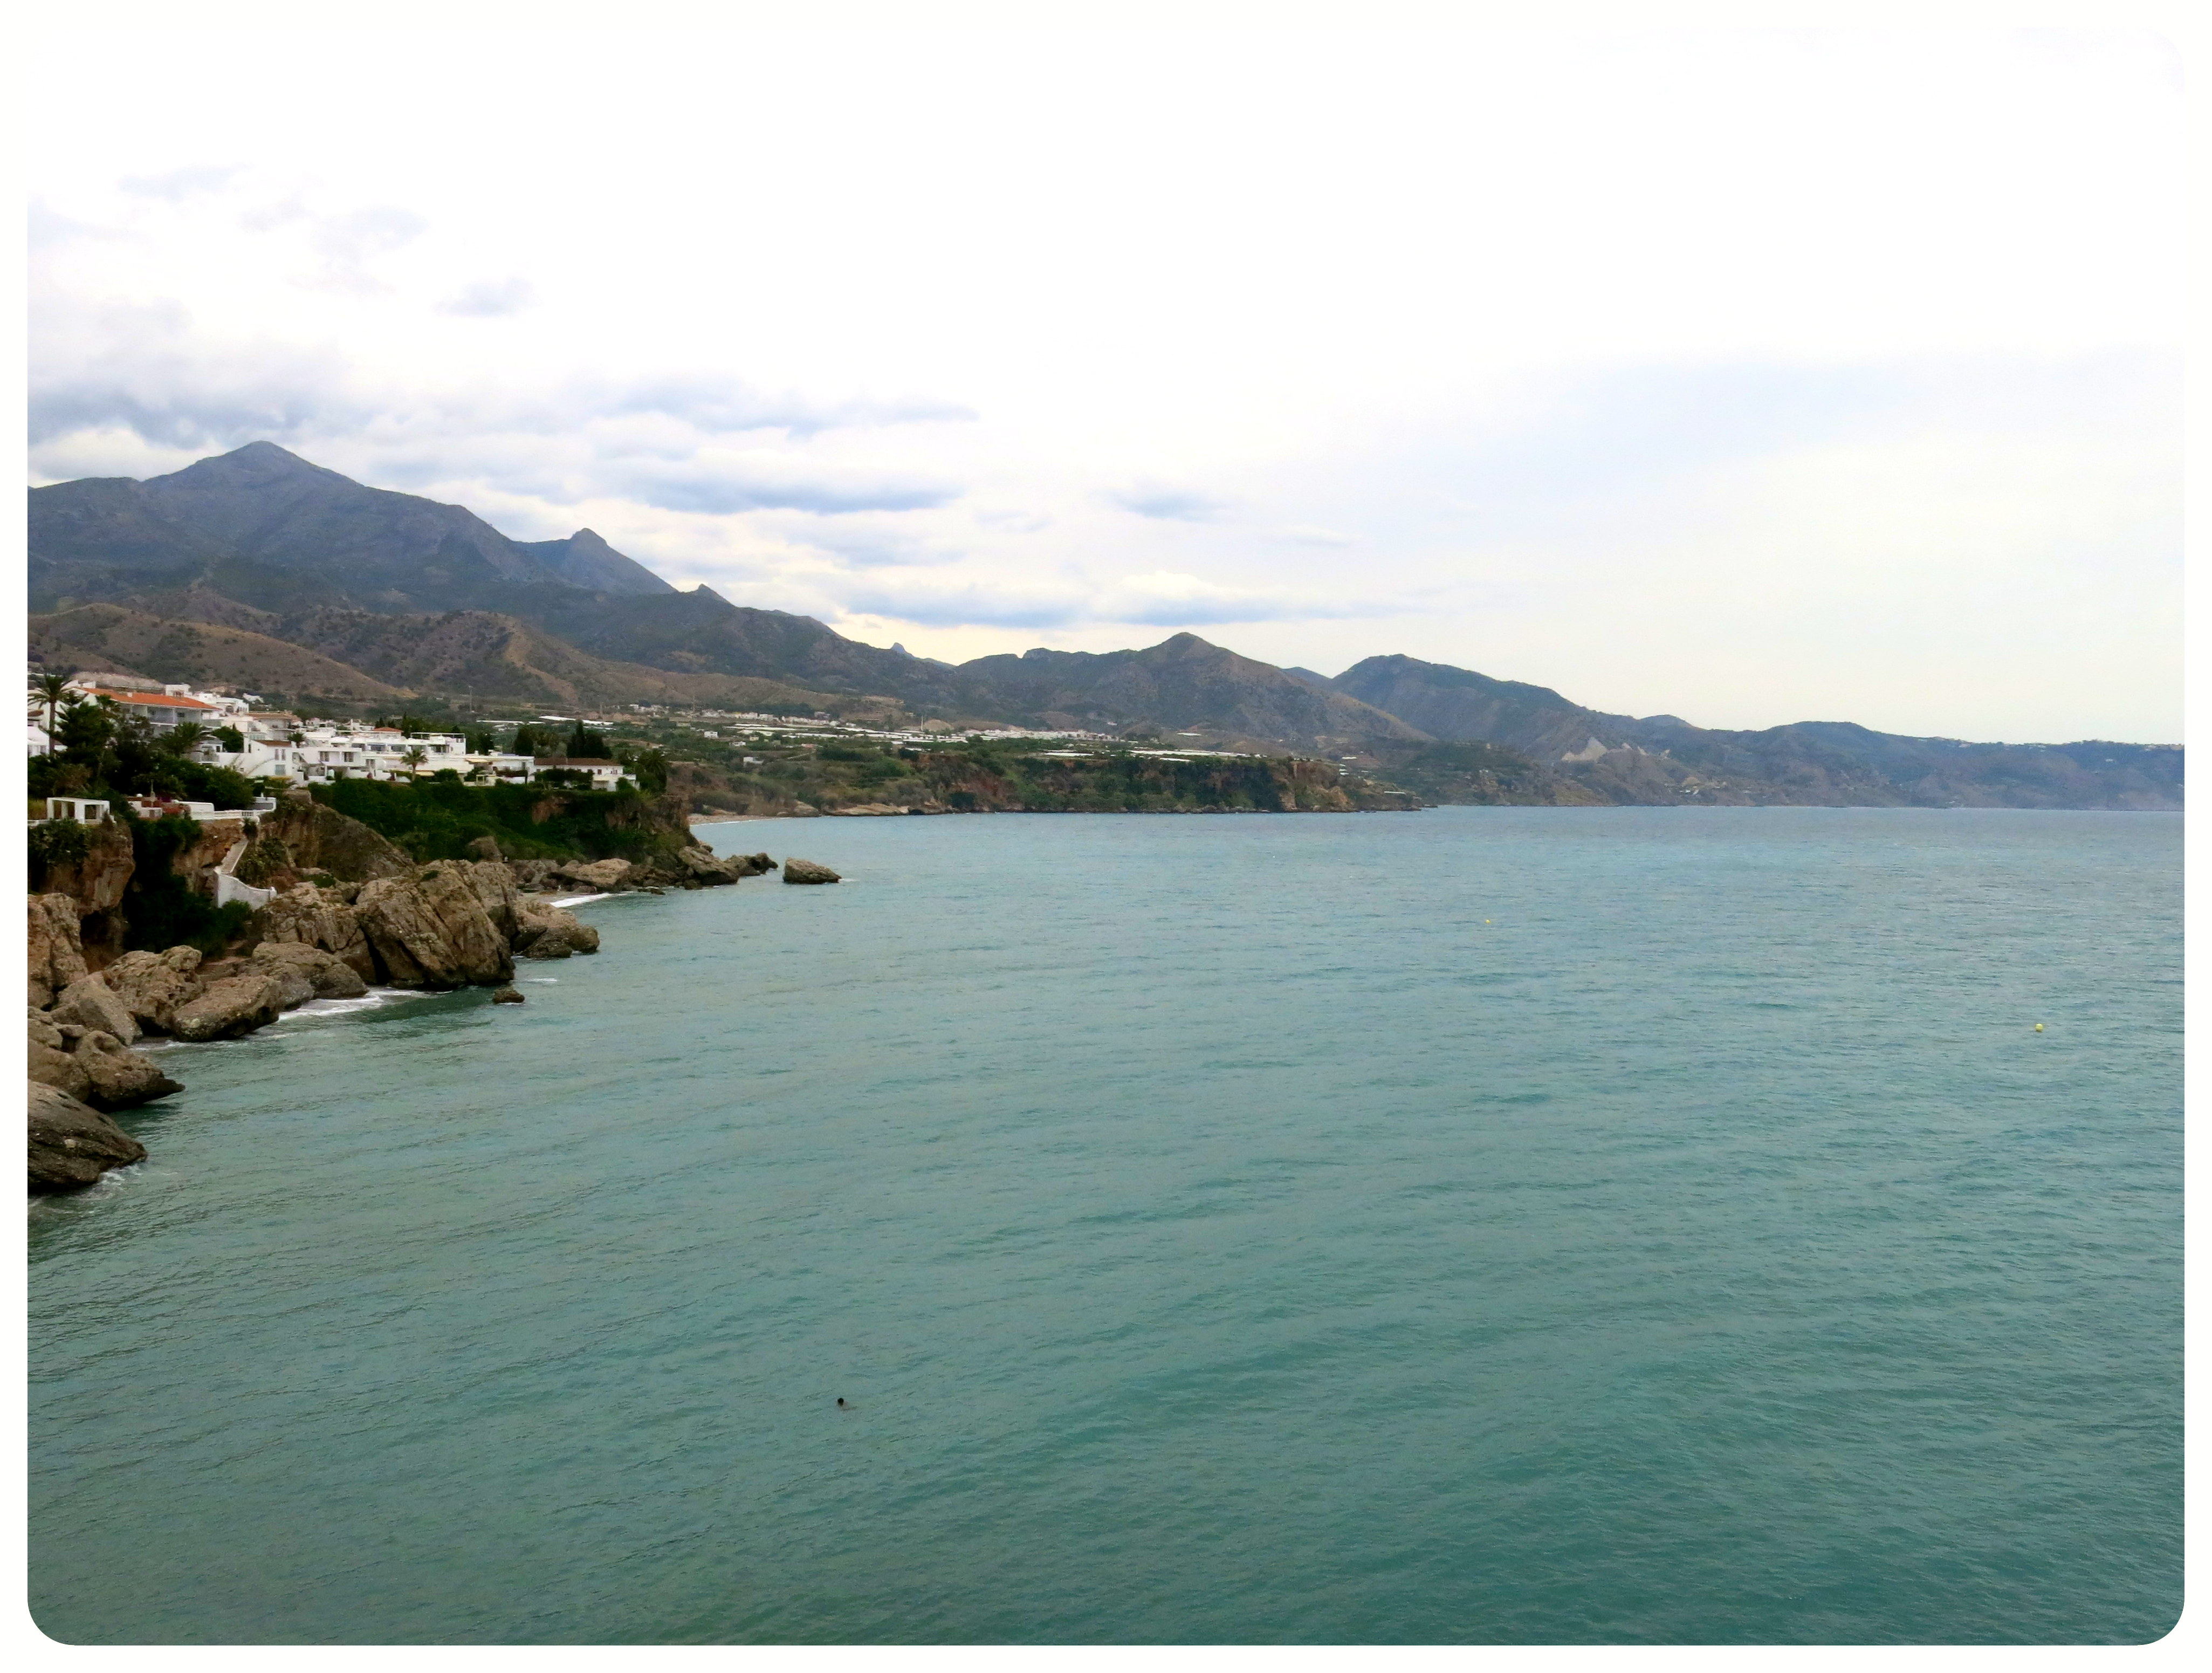 Photo of the view from Balcon de Europa in Nerja